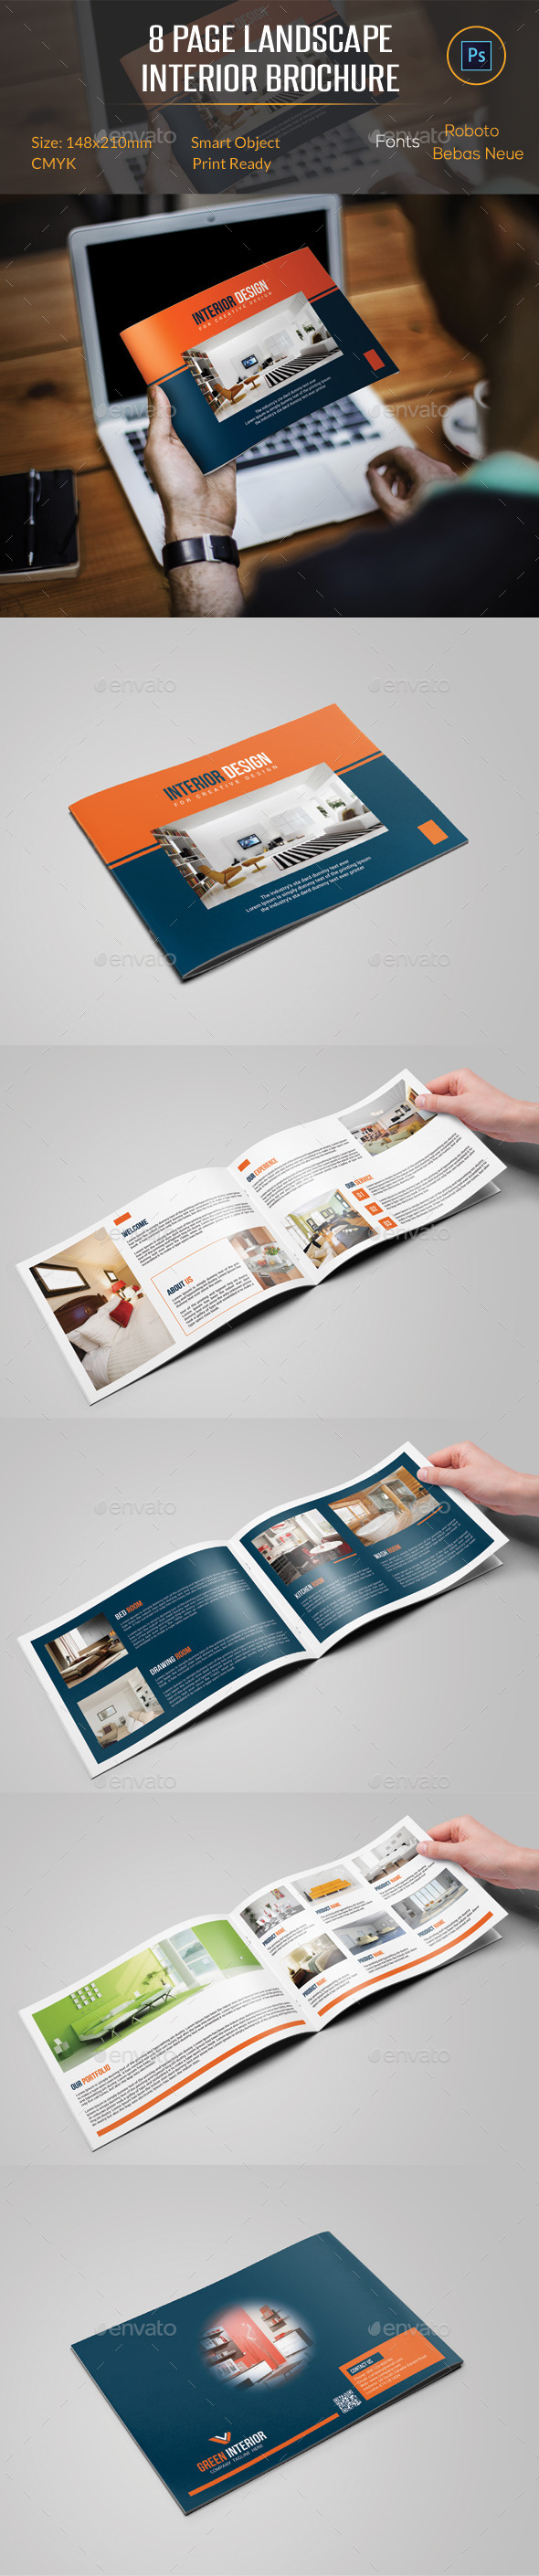 8 Pages Landscape Interior Brochure - Catalogs Brochures